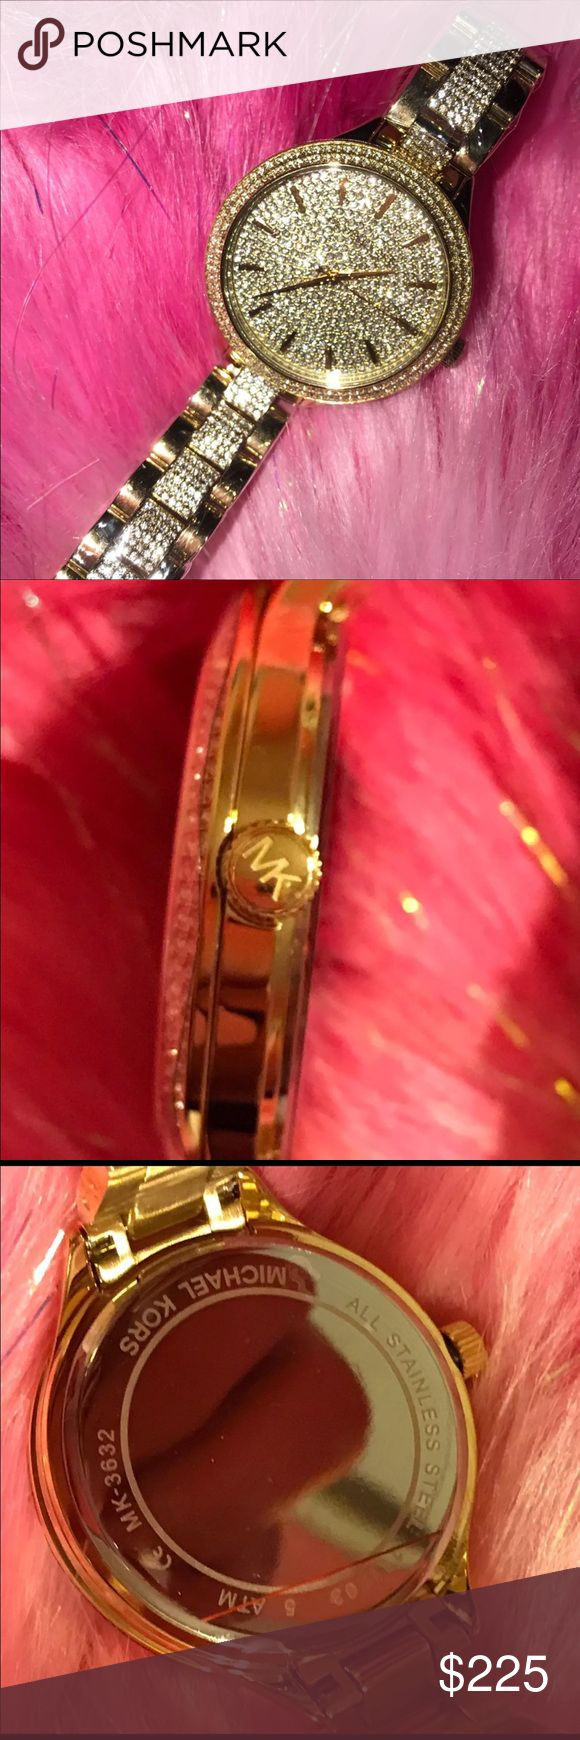 Michael Kors Gold Slim Runway Watch Brand new, tags still on, get it sized at an Michael Kors! Sorry no box. MICHAEL Michael Kors Accessories Watches